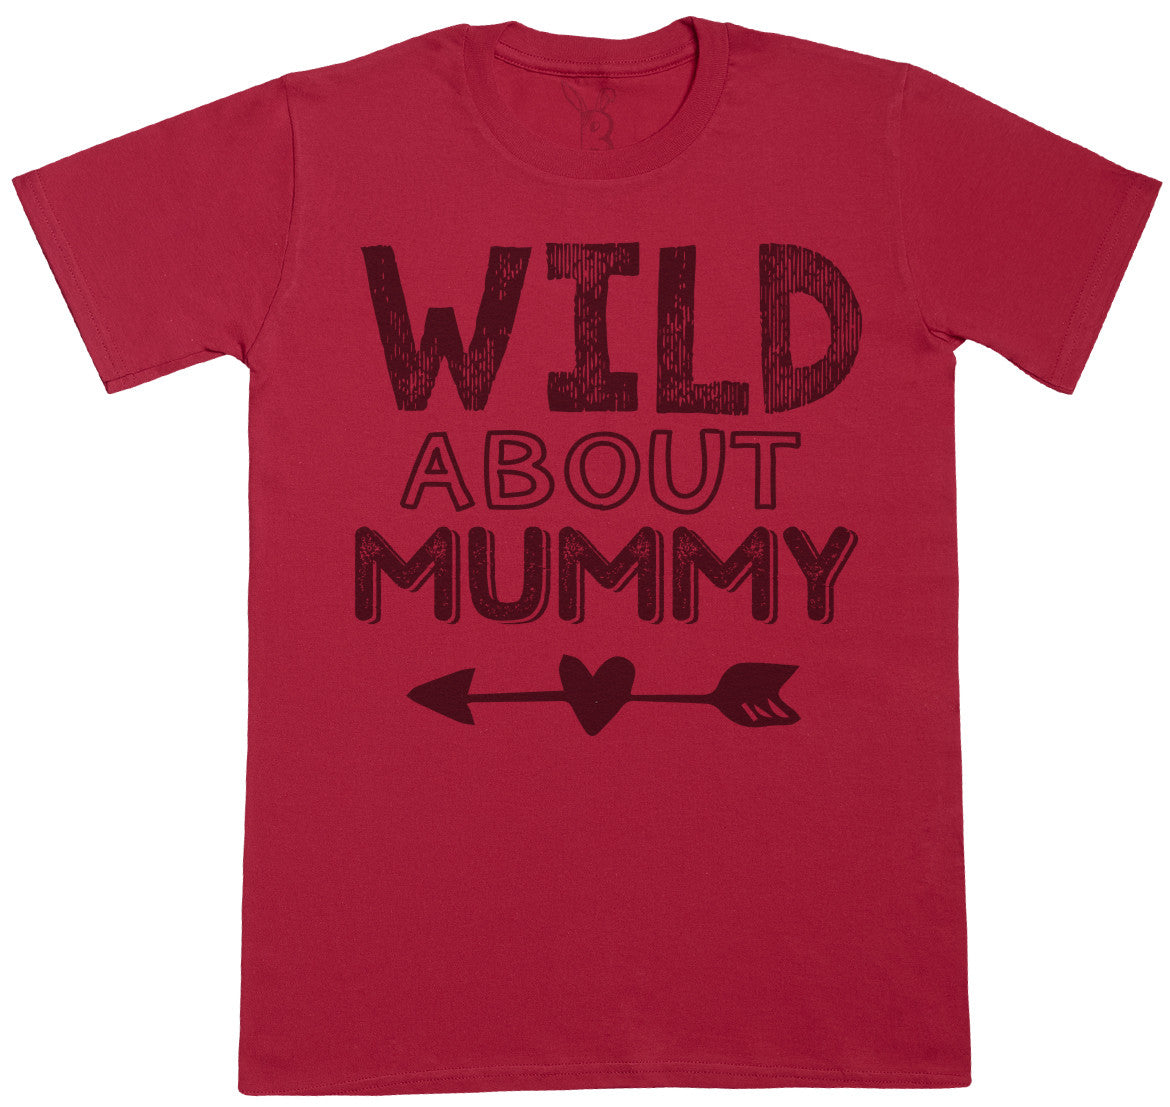 Wild About Mummy Kids T-Shirt - Kids Top - Boys T-Shirt - Girls T-Shirt